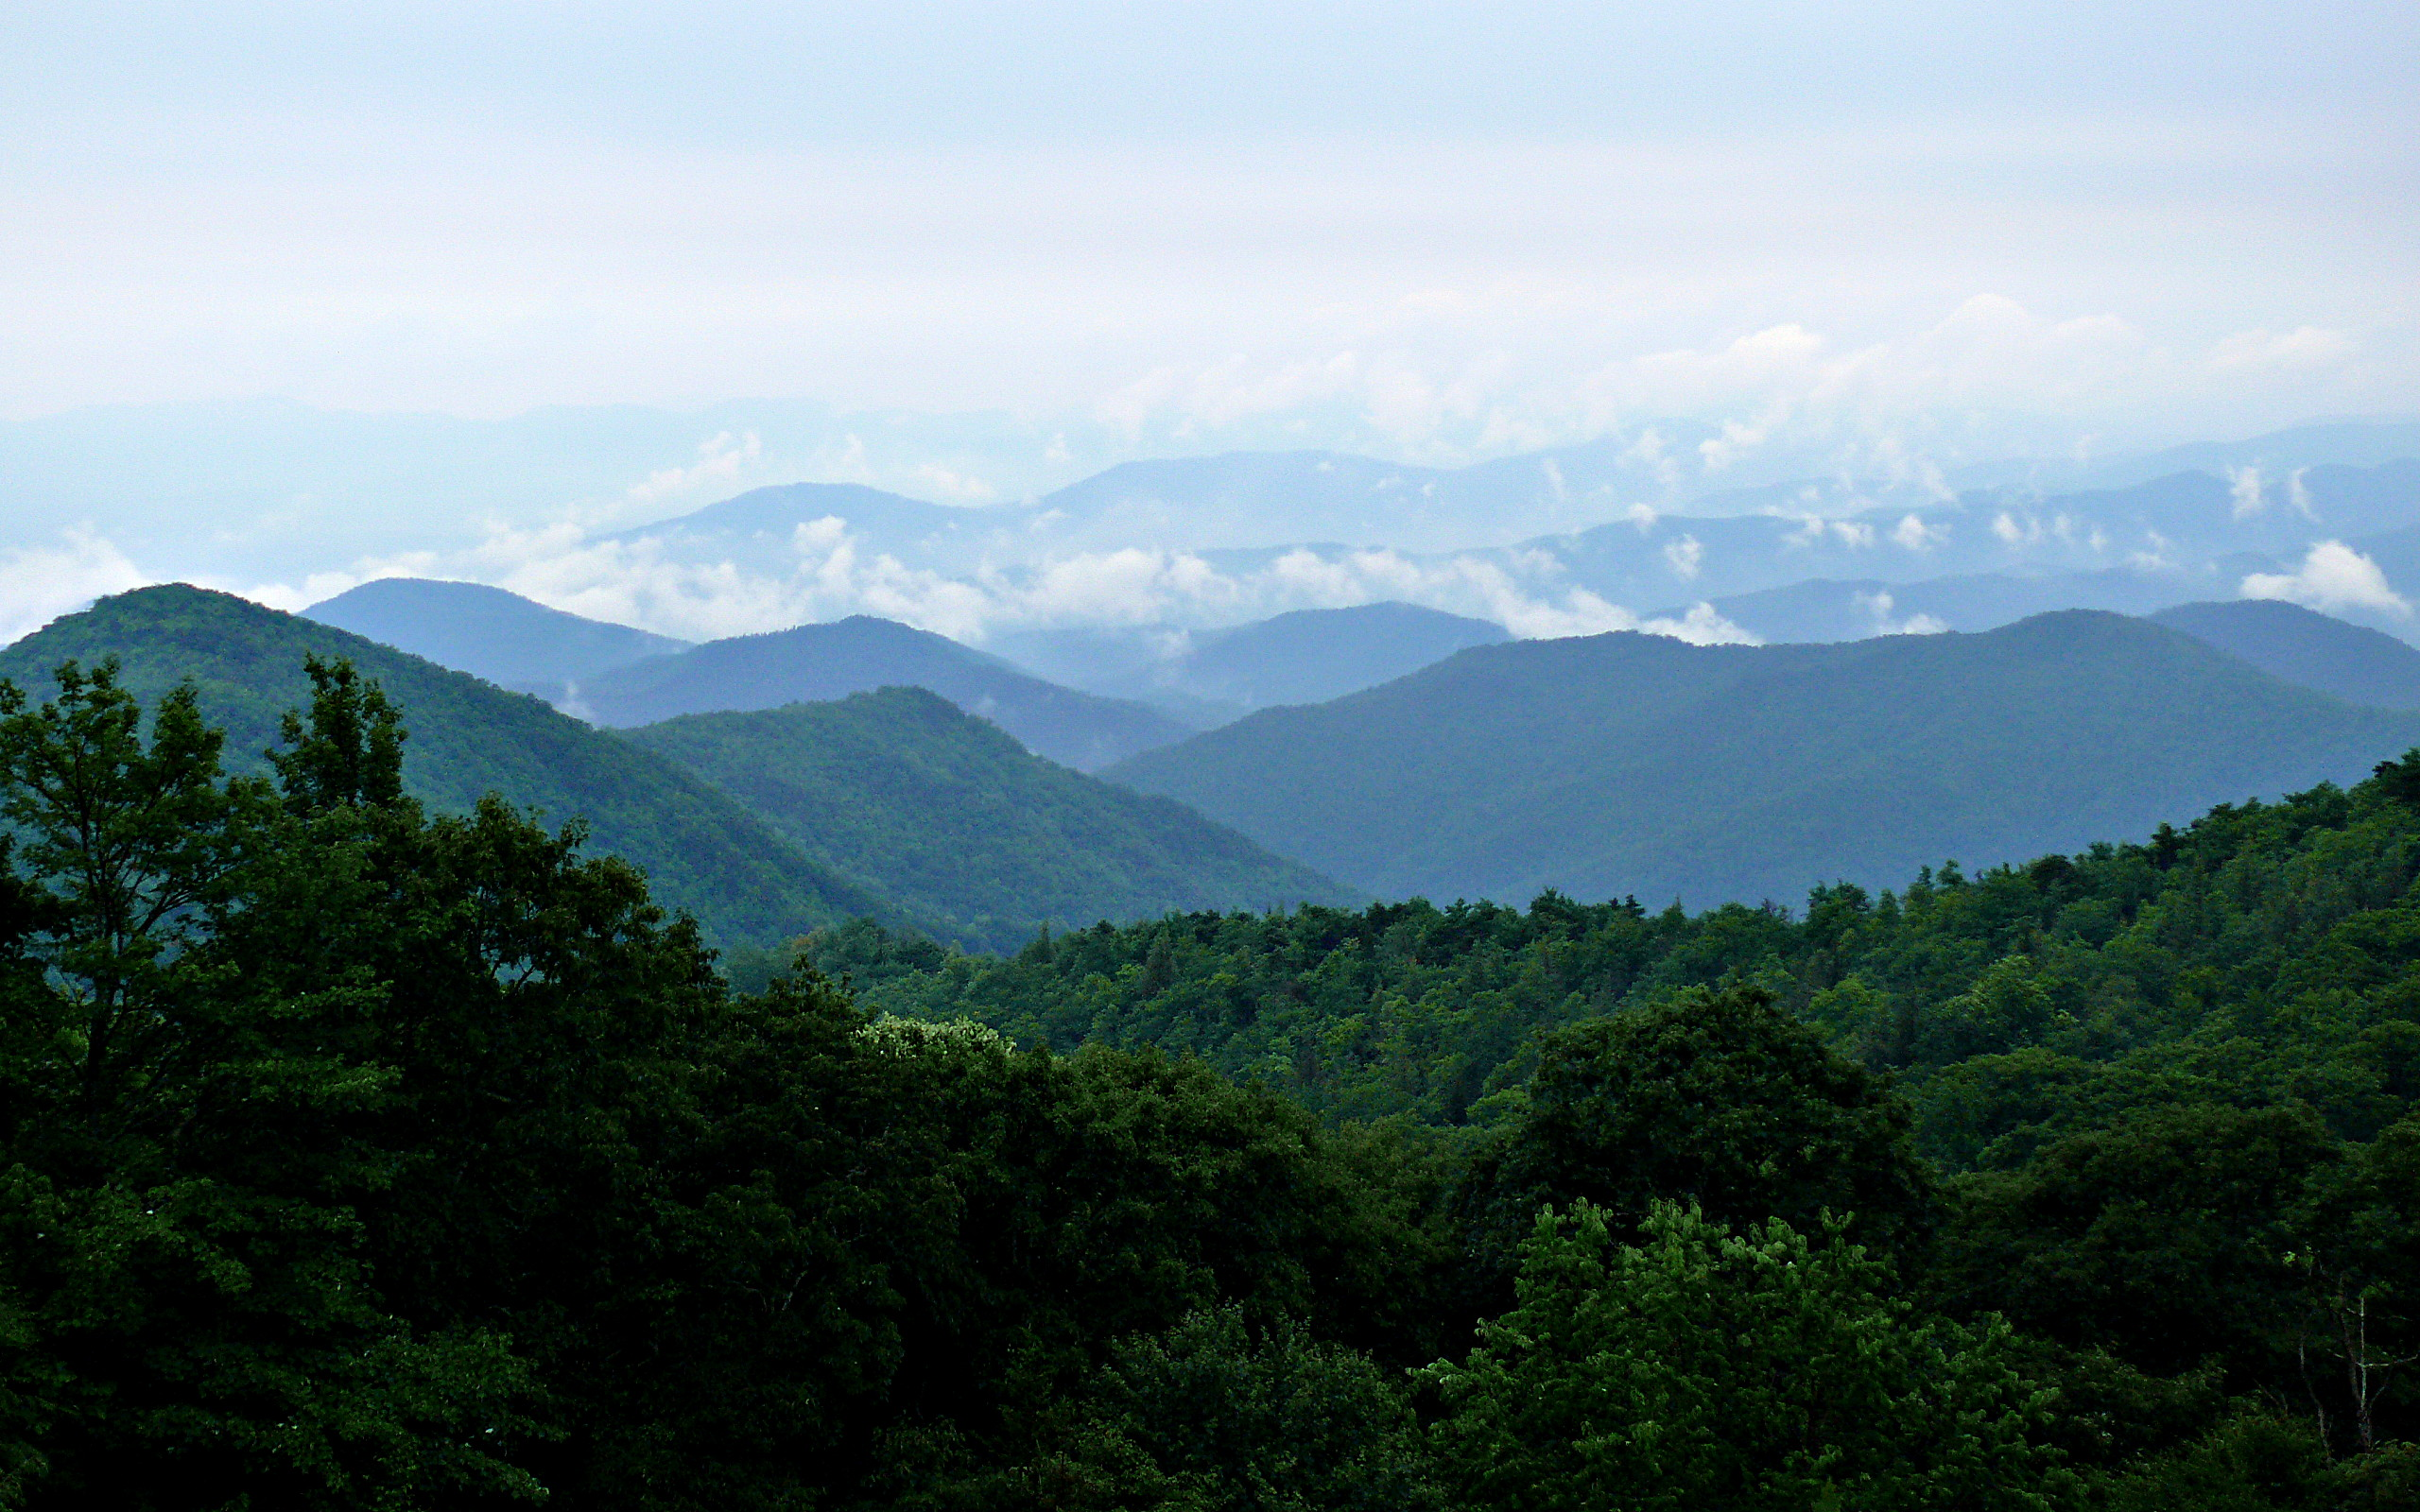 File:Rainy Blue Ridge-27527.jpg - Wikimedia Commons